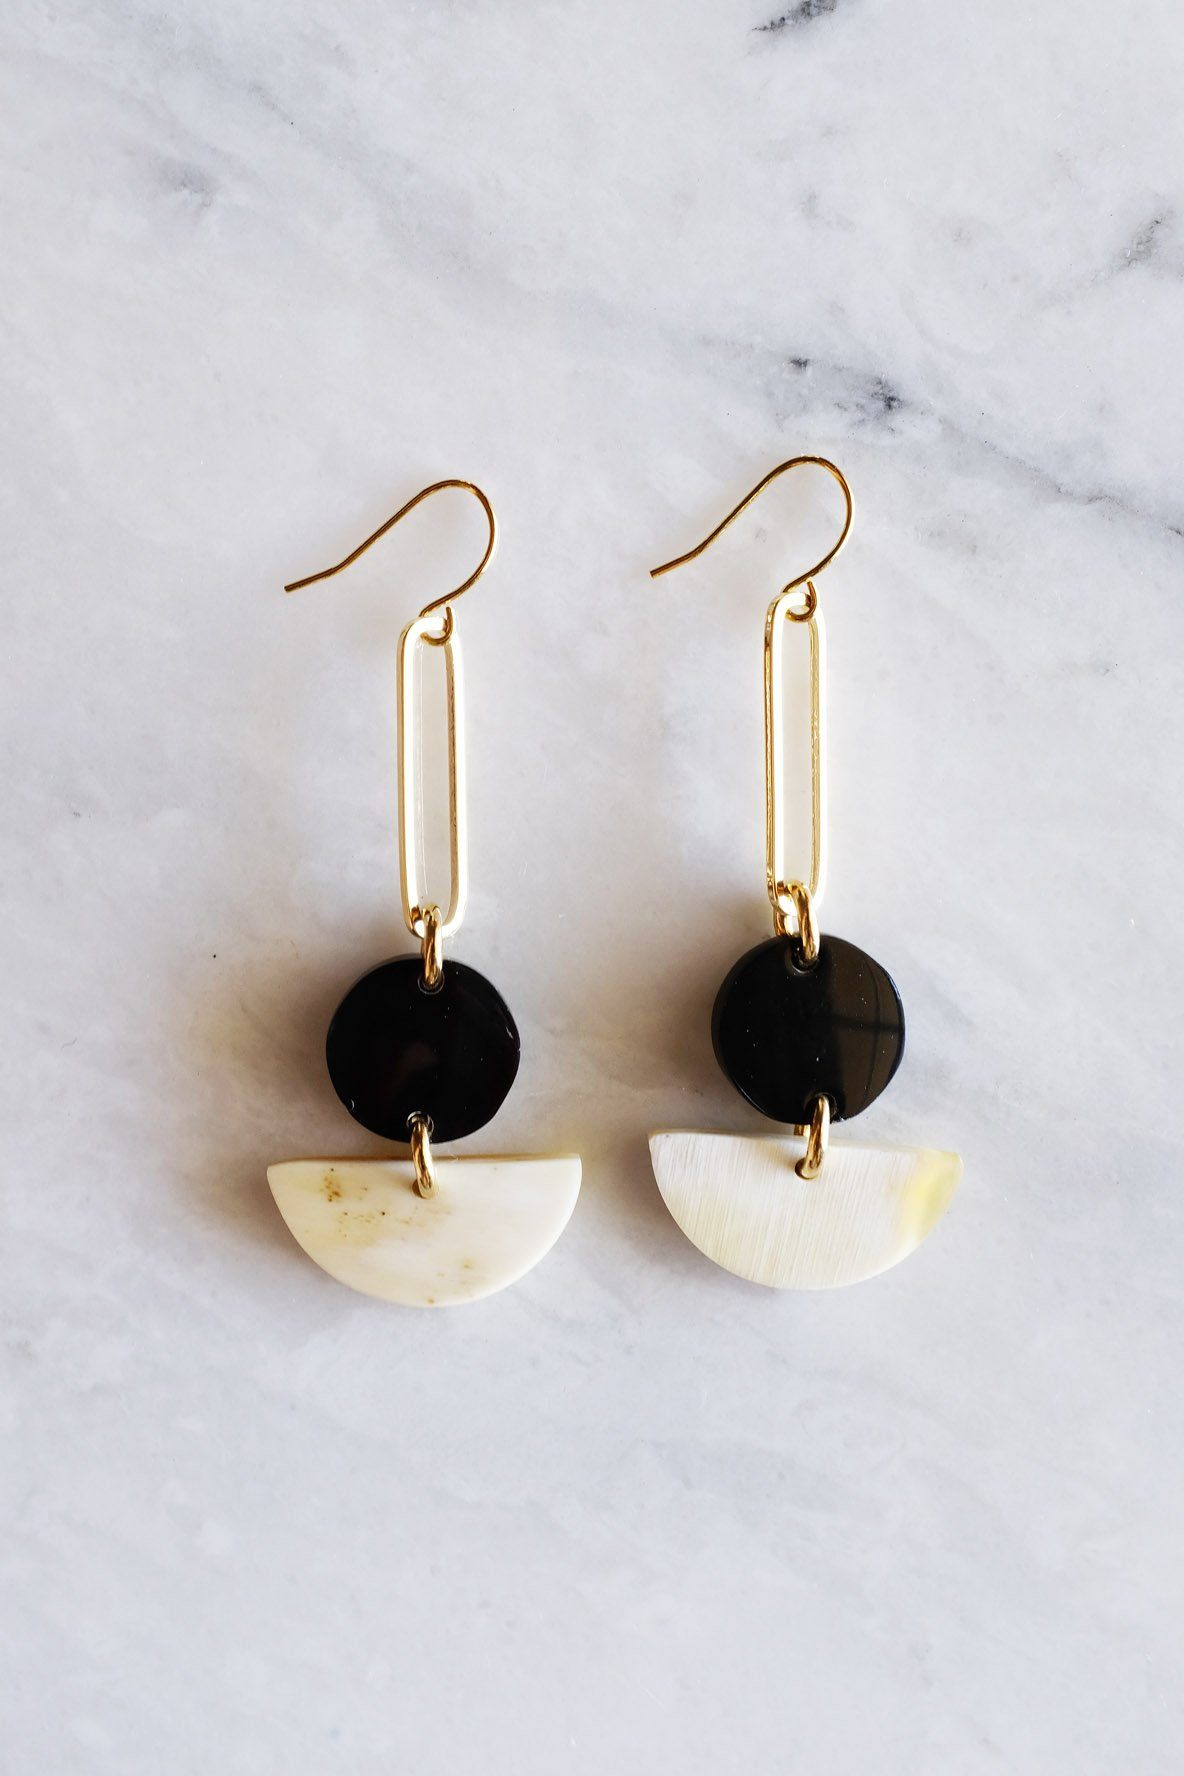 Tho Bar & Geo Buffalo Horn Earrings - Handcrafted & Unique Buffalo Horn Jewelry